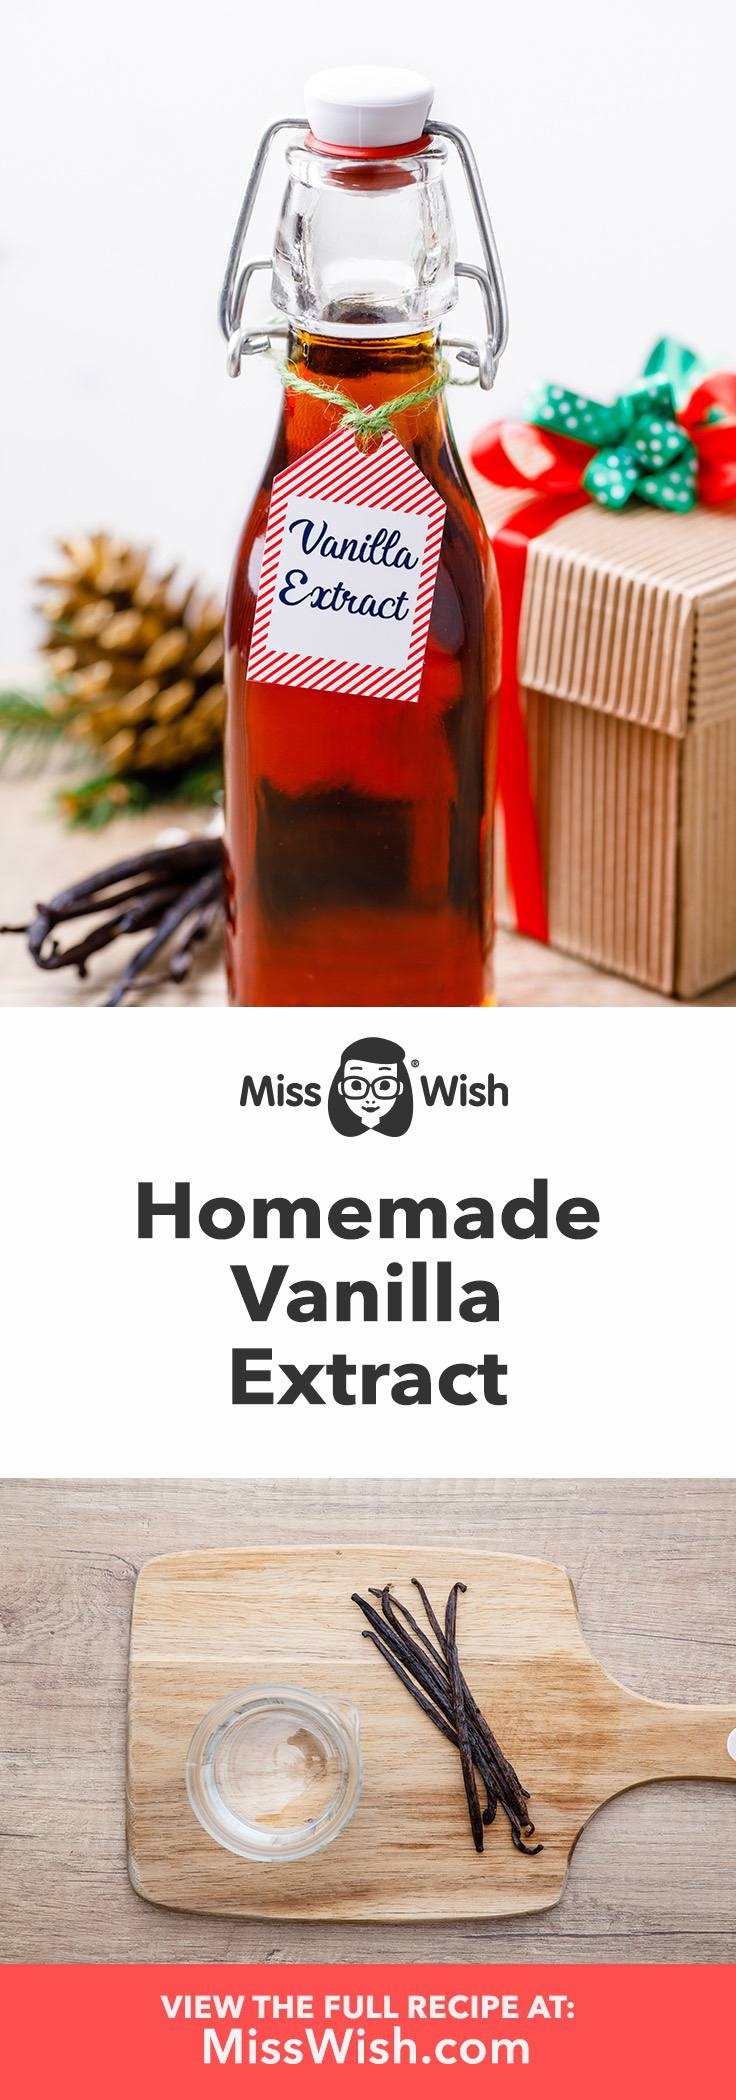 How to make homemade vanilla extract. This is so much better than store-bought!